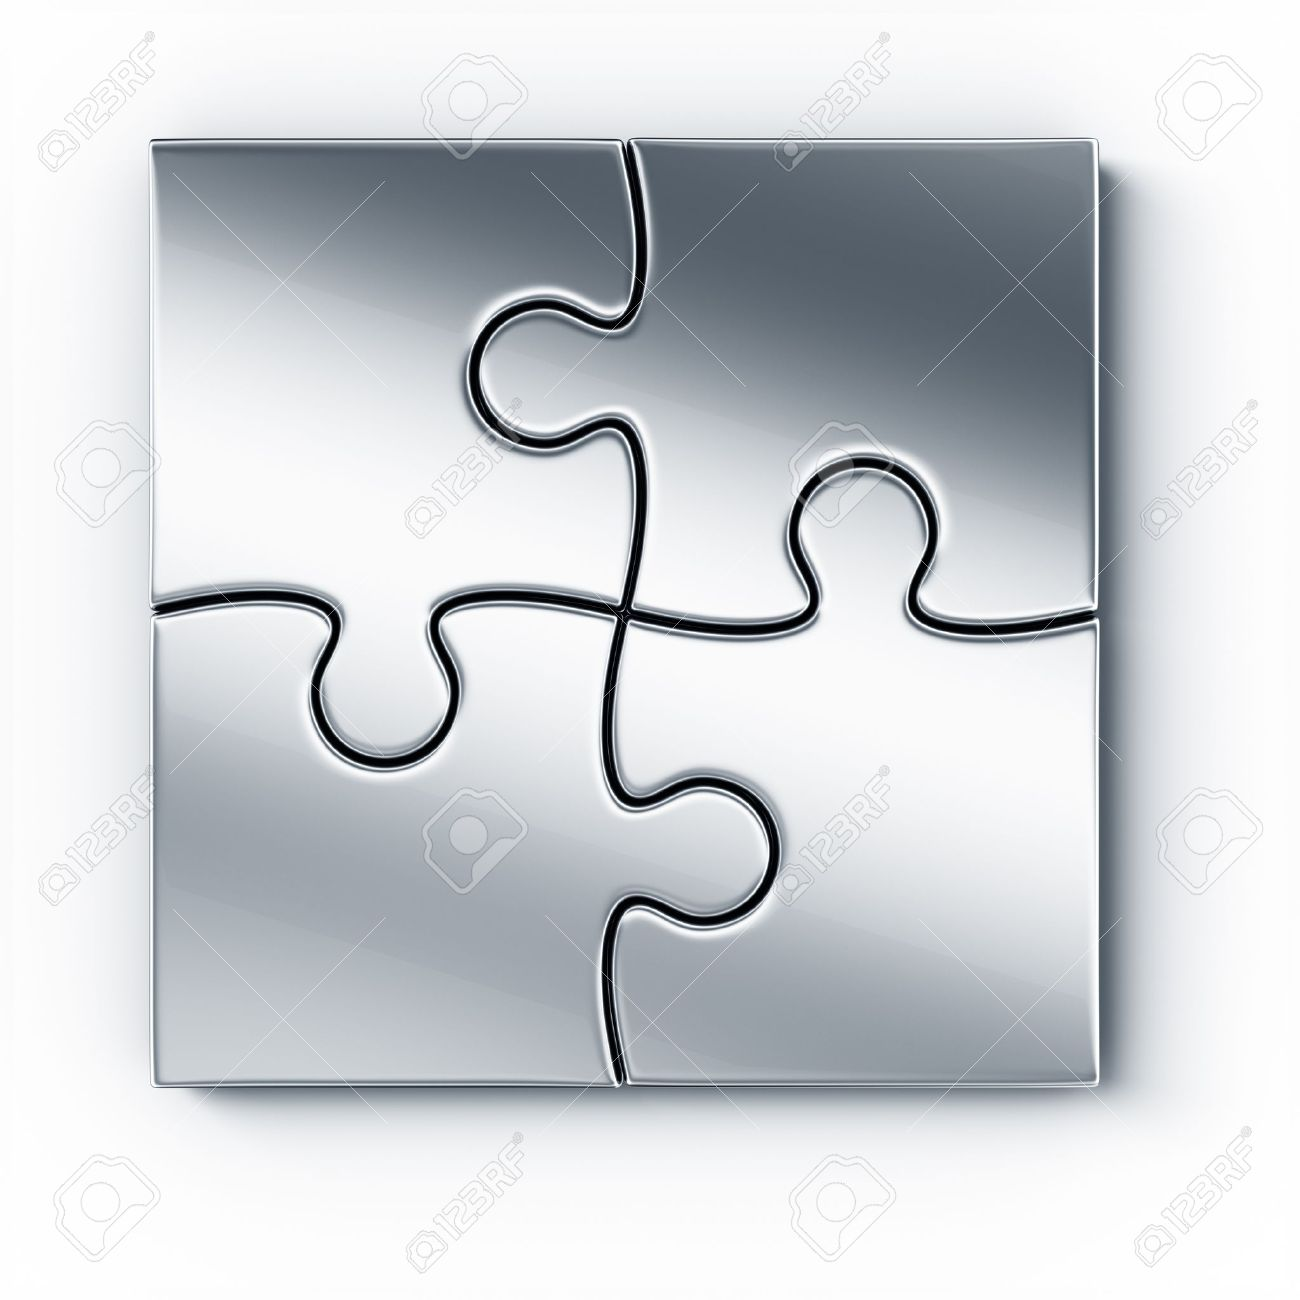 Metal puzzle pieces on a white floor seen from the top Stock Photo - 10846158